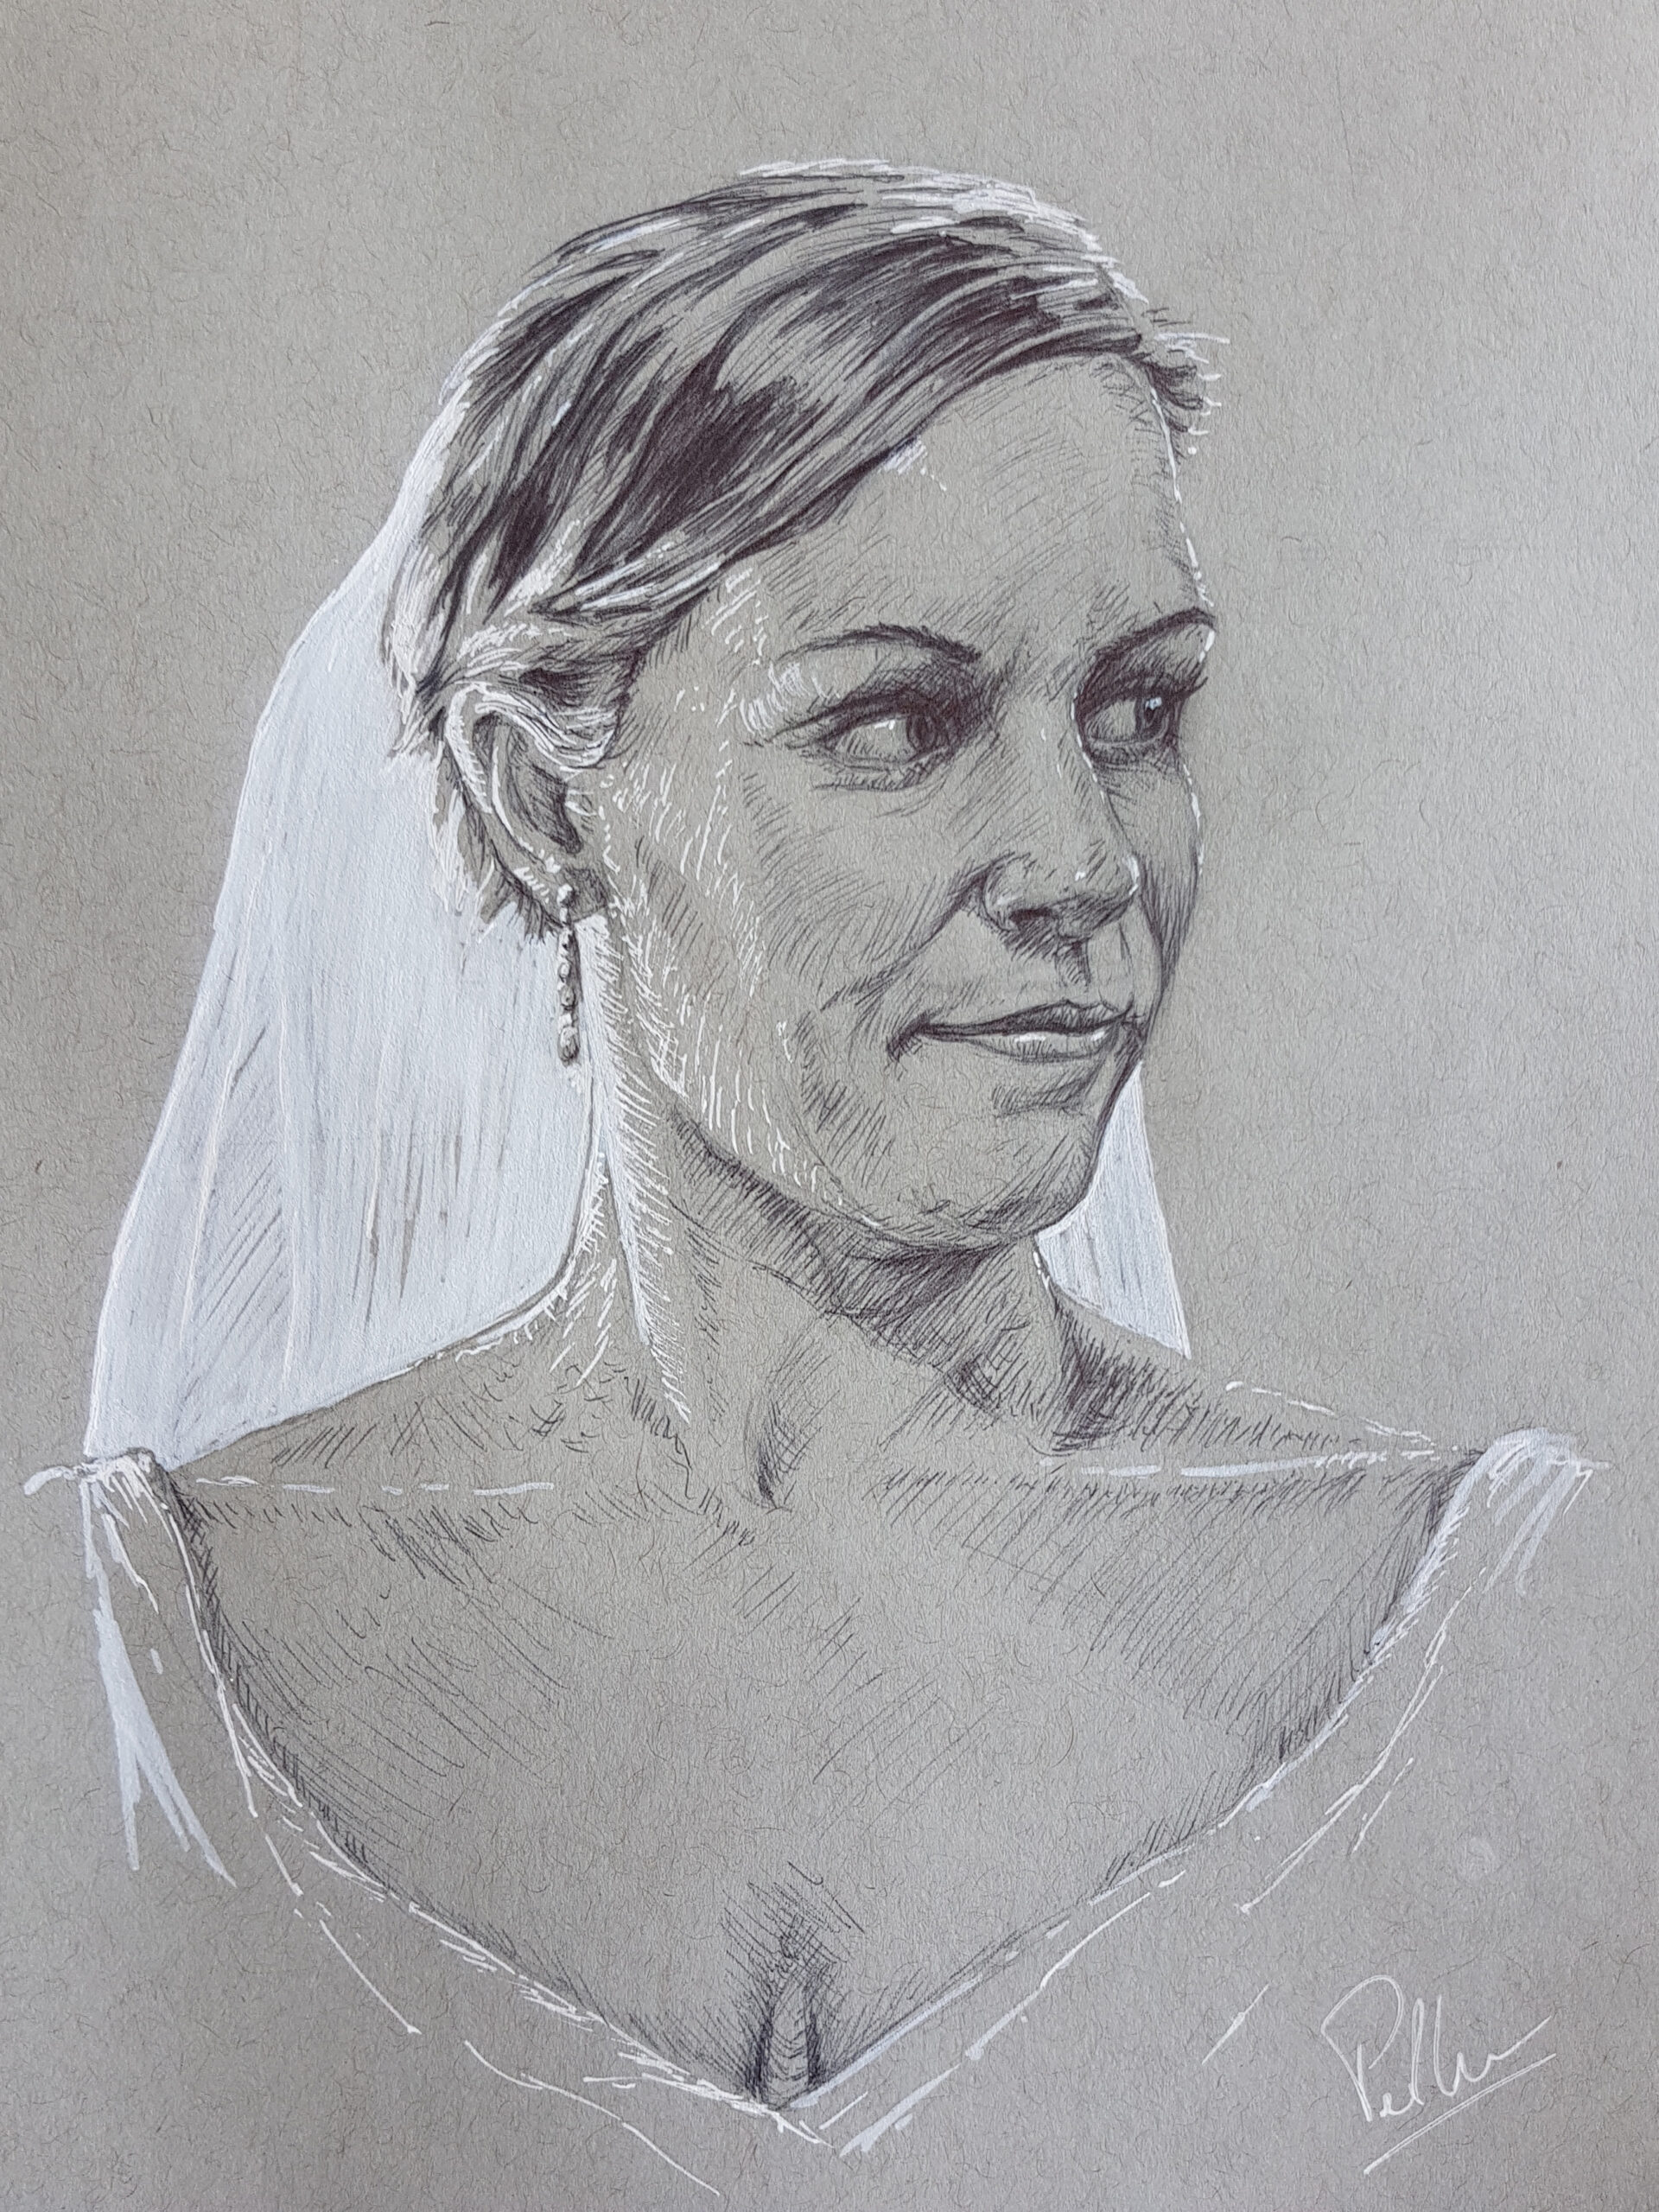 Kristie, the beautiful bride - pen and ink illustration by Six Foot Seven